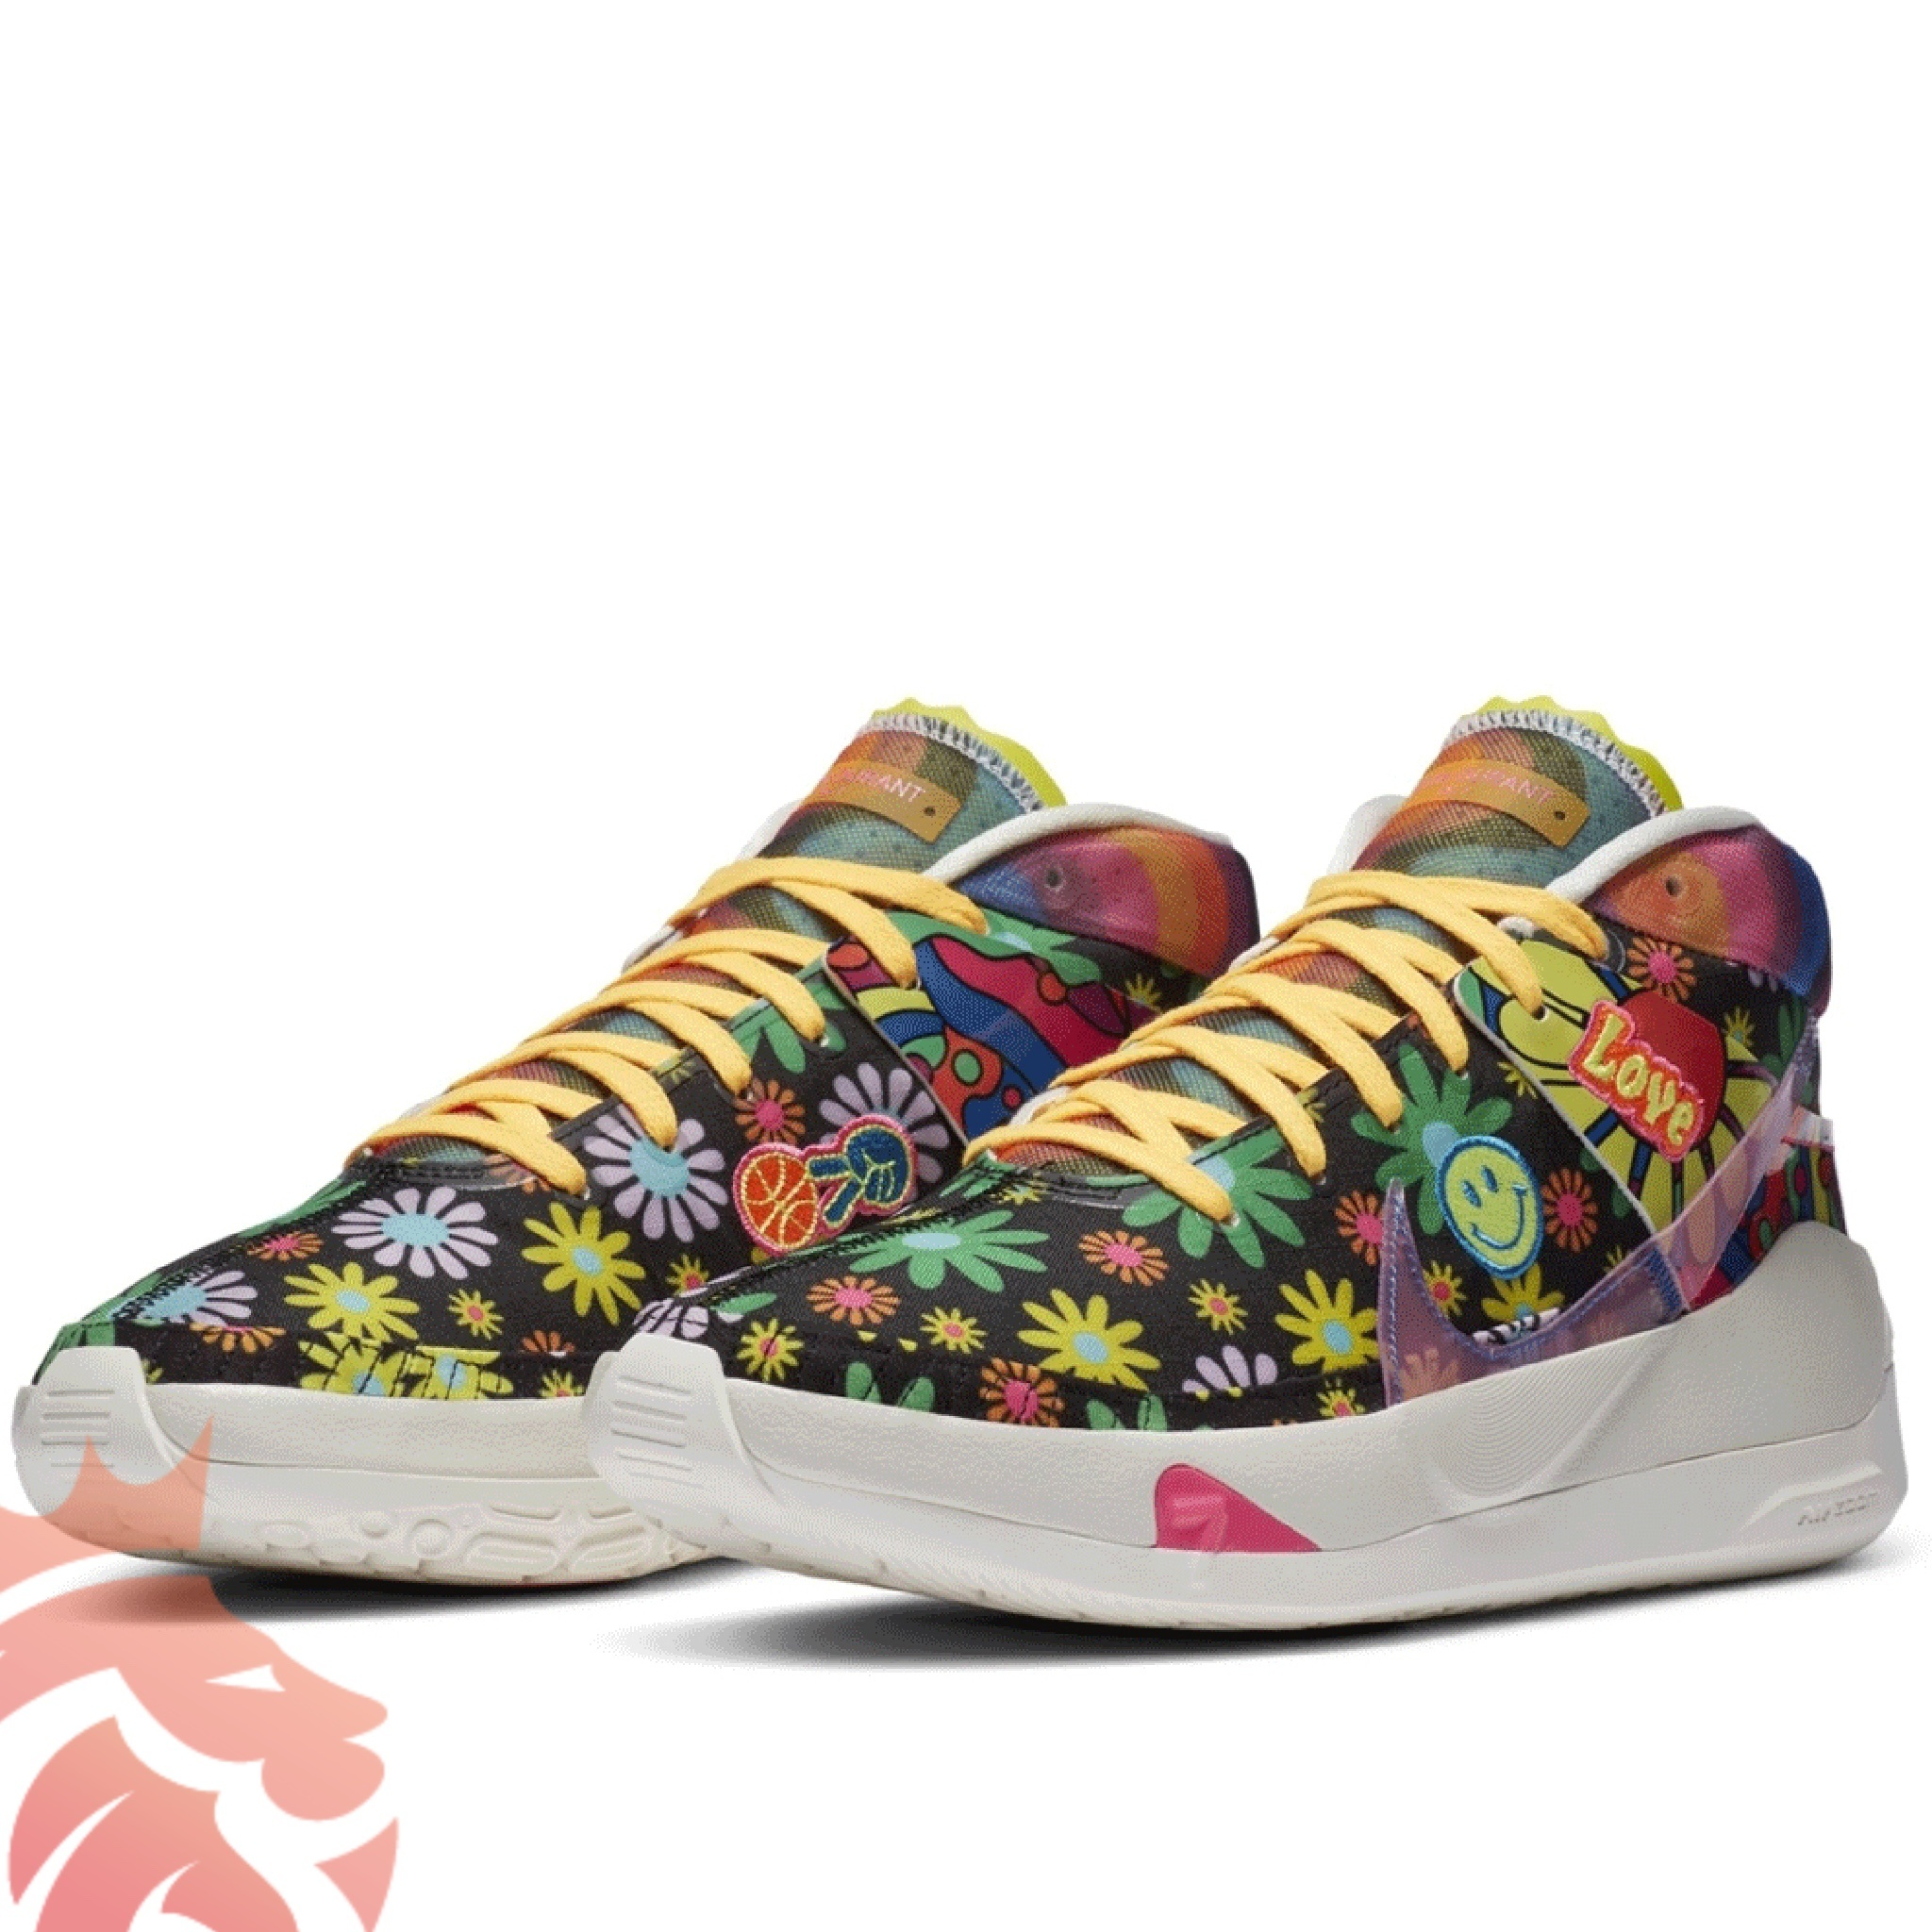 "Kevin Durant Nike KD 13 ""Peace, Love, And Basketball"" CI1474-001 Black/White/Multi-Color CI1474-001"